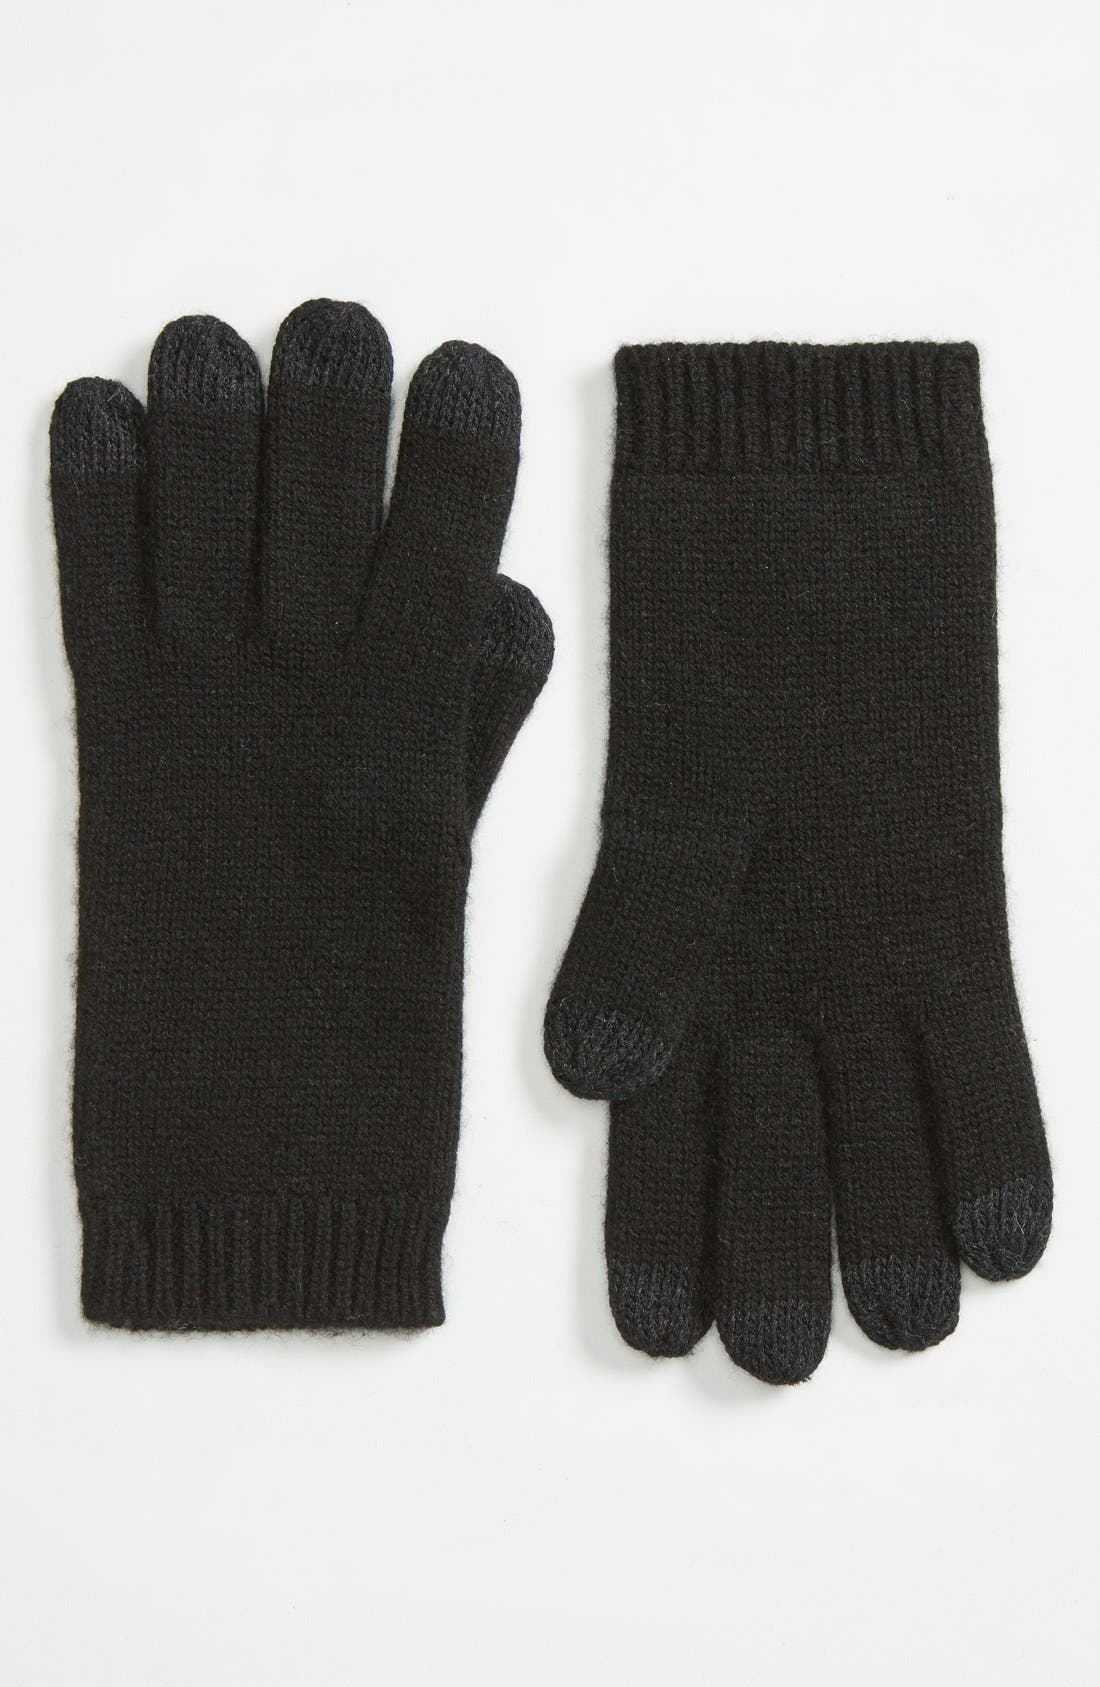 Main Image - UGG® 'Luxe Smart' Tech Gloves